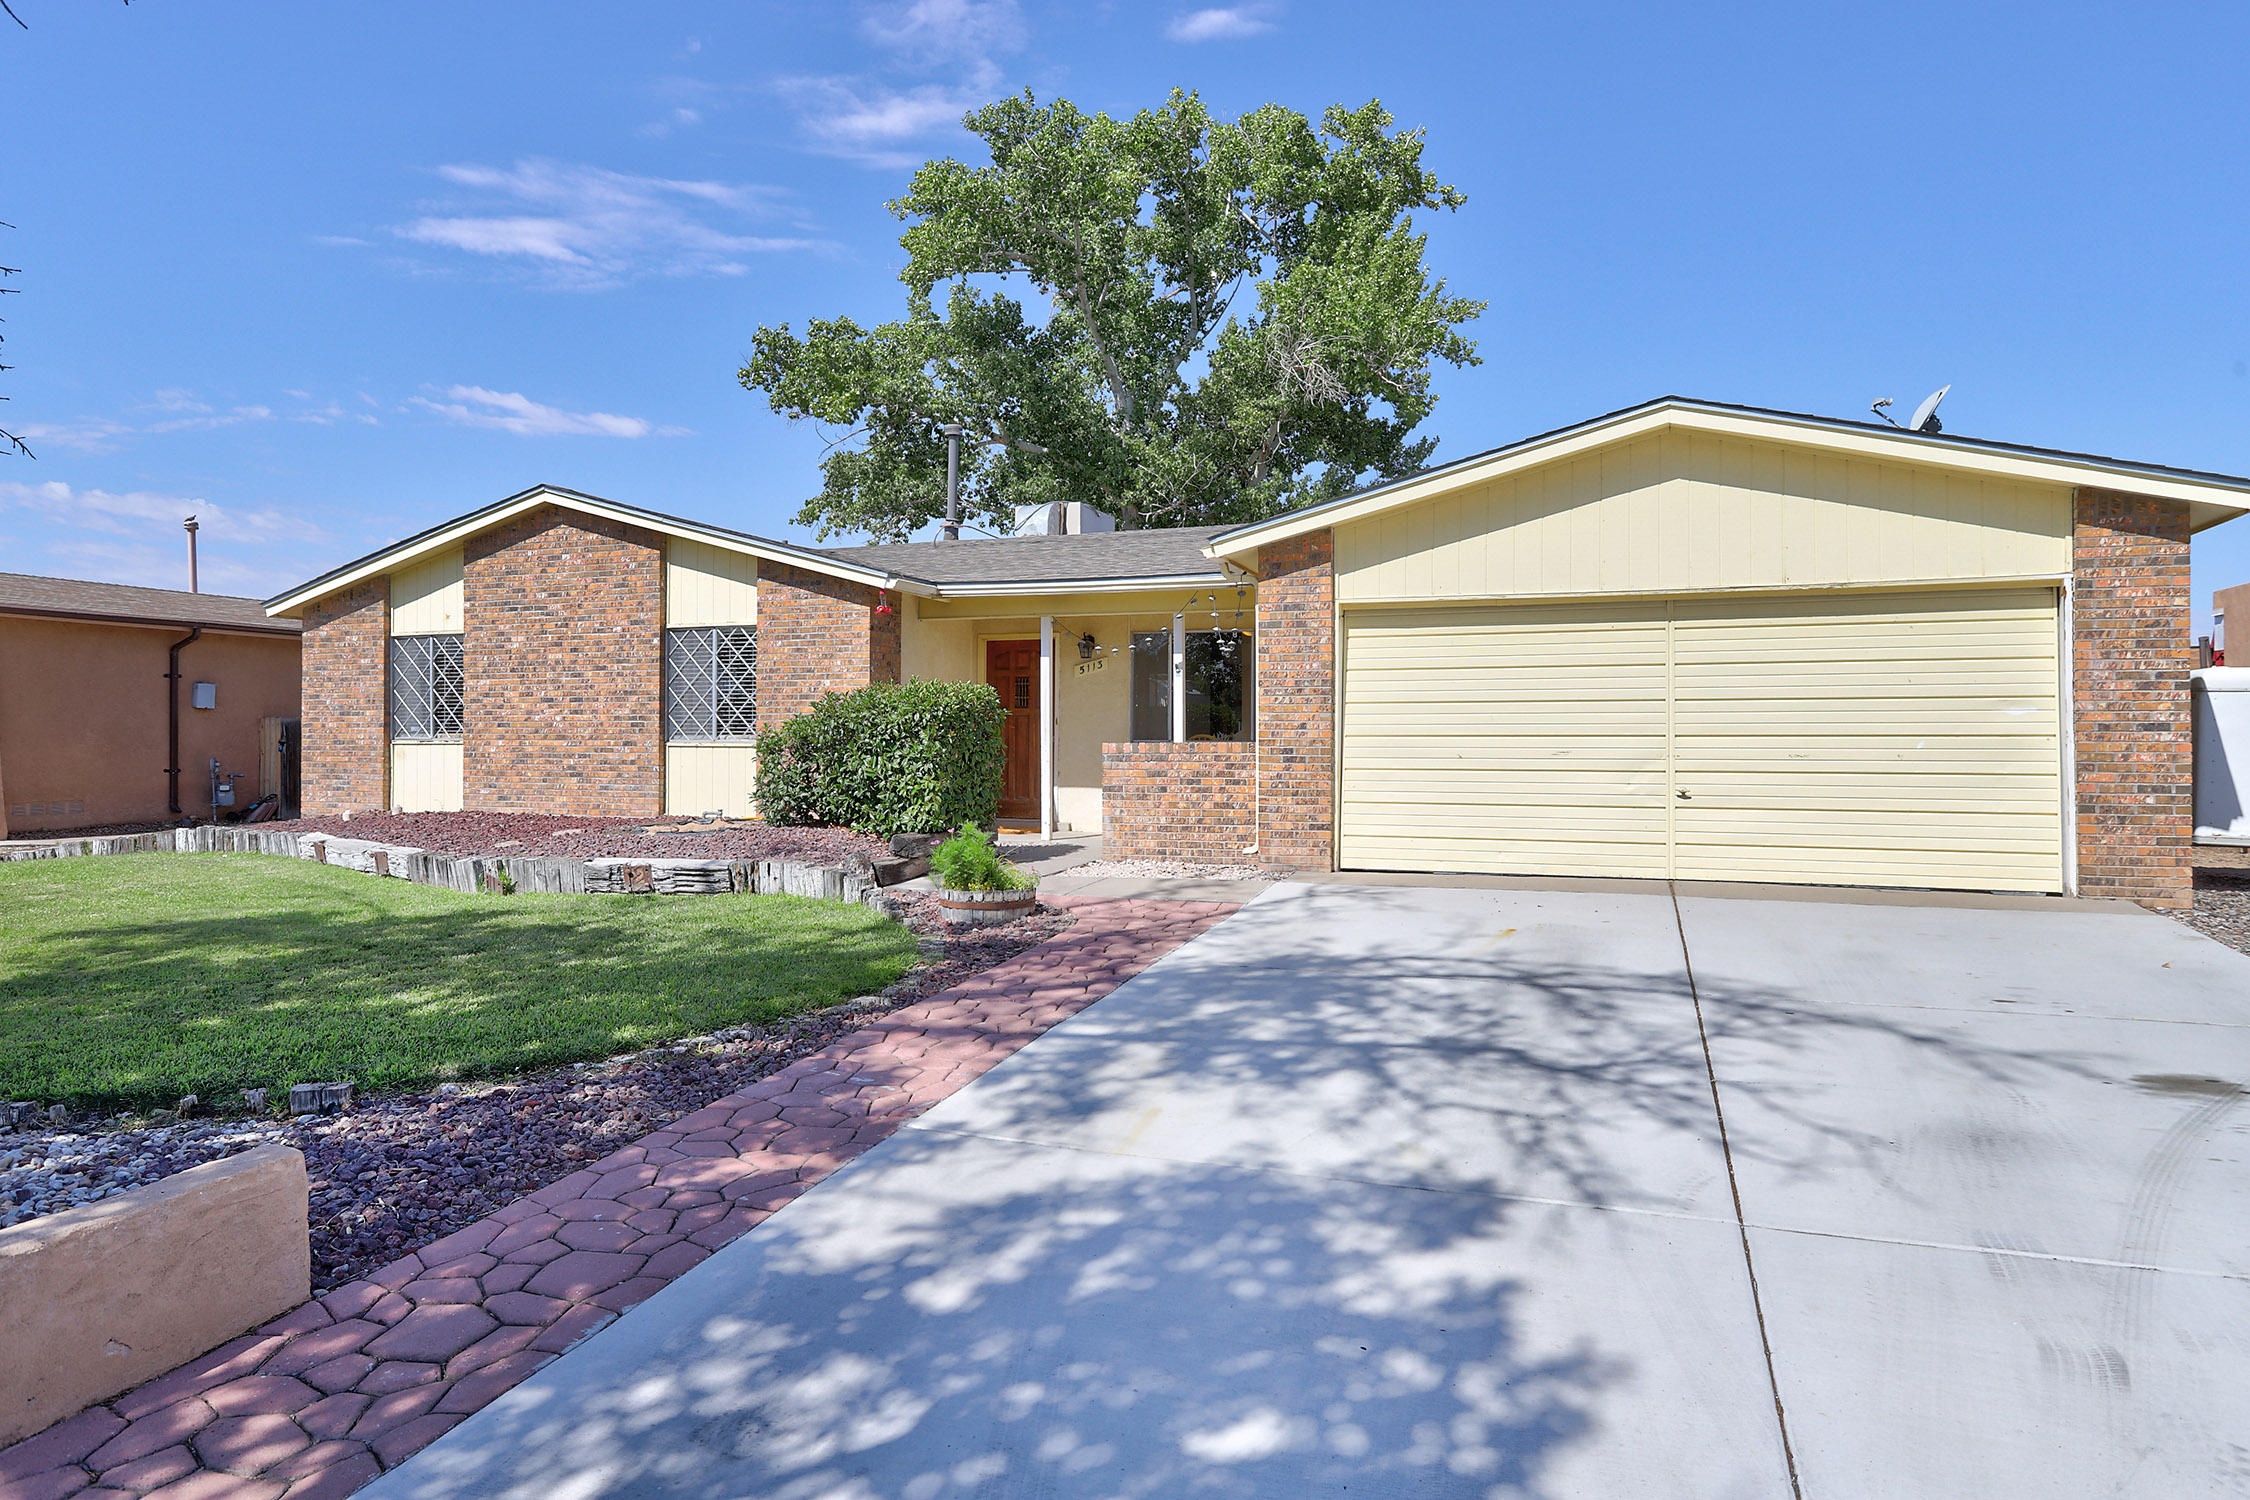 Its a Gem!! Come view this 3 bedroom one story in the heart of Taylor Ranch.  Charming foyer  leads to living room,& dining area, Entertaining is a dream with the kitchen(pantry, gas stove and breakfast bar) opening into large great room complete with fireplace.Sun room flex area adds additional living space for office/4th bedroom, or quiet retreat.  Large backyard has plenty of room for a garden. Newer  flooring, large bedrooms and updated baths make this a delightful find.  Shopping, schools, and restaurants are just minutes away.  Welcome home!!